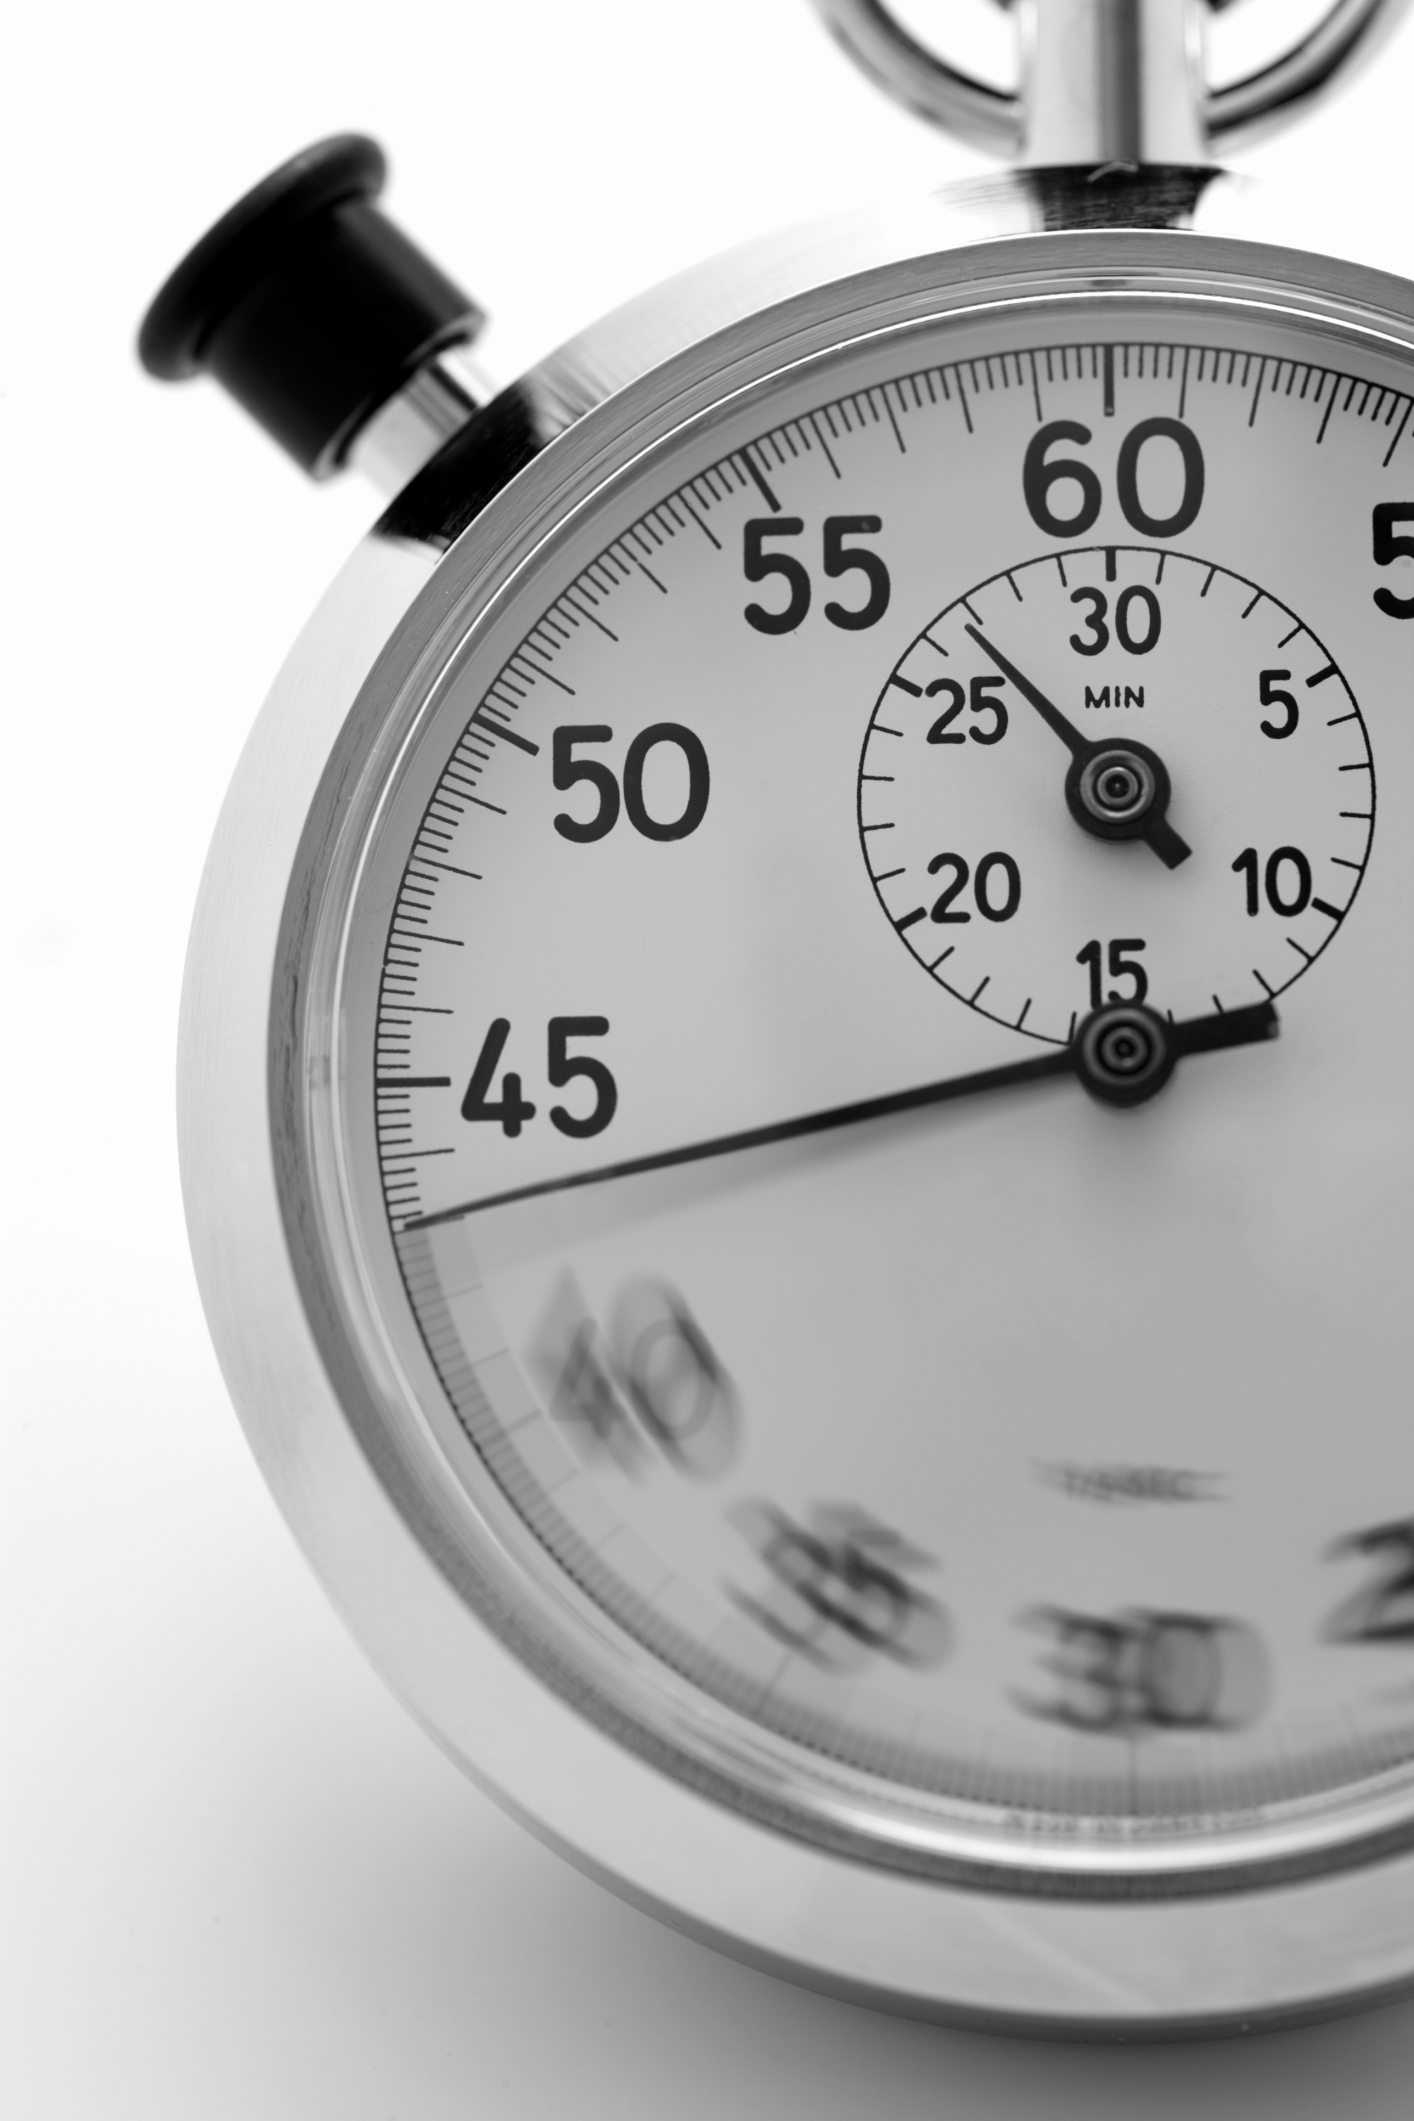 How Do I Calculate Minutes Into a Fraction of an Hour?